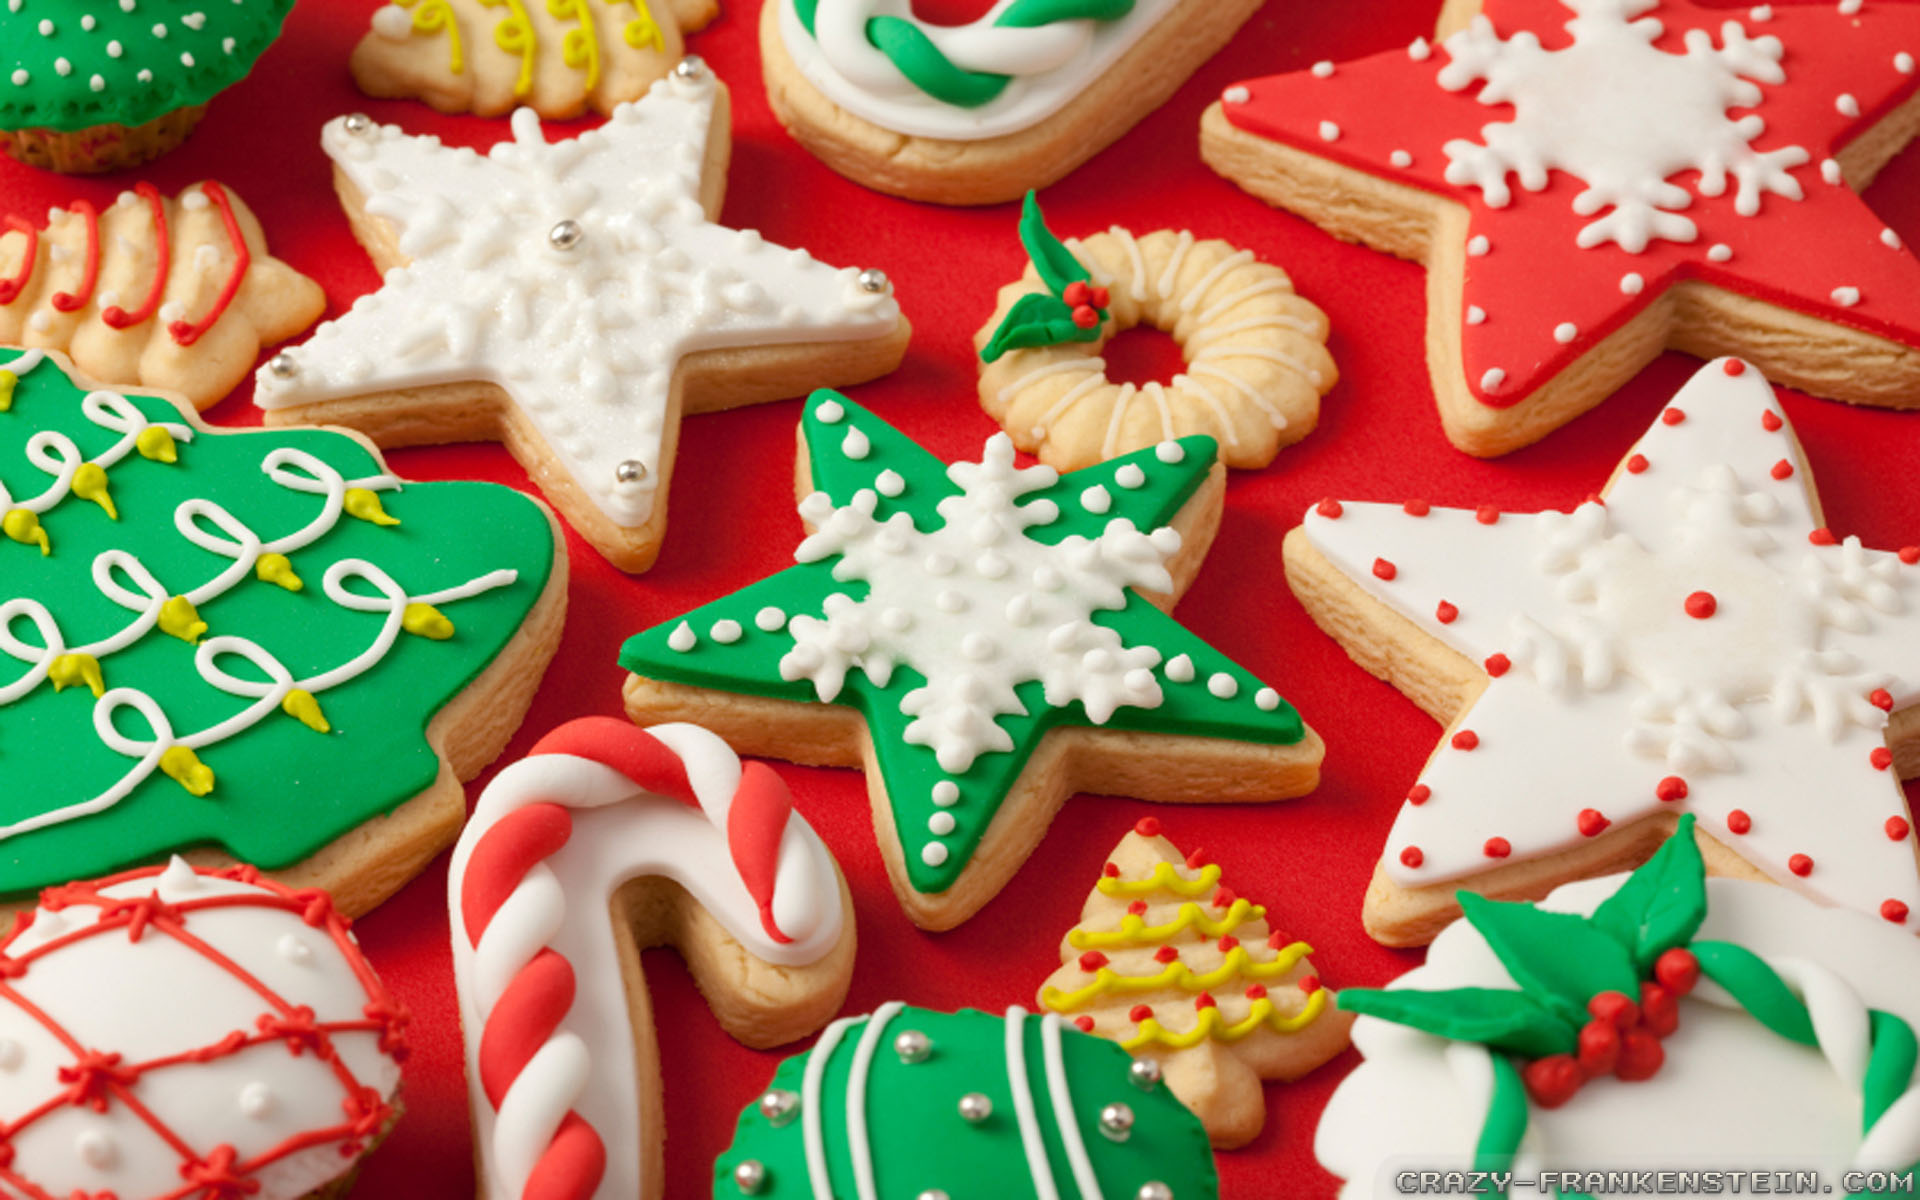 Free Holiday Cookies Wallpaper